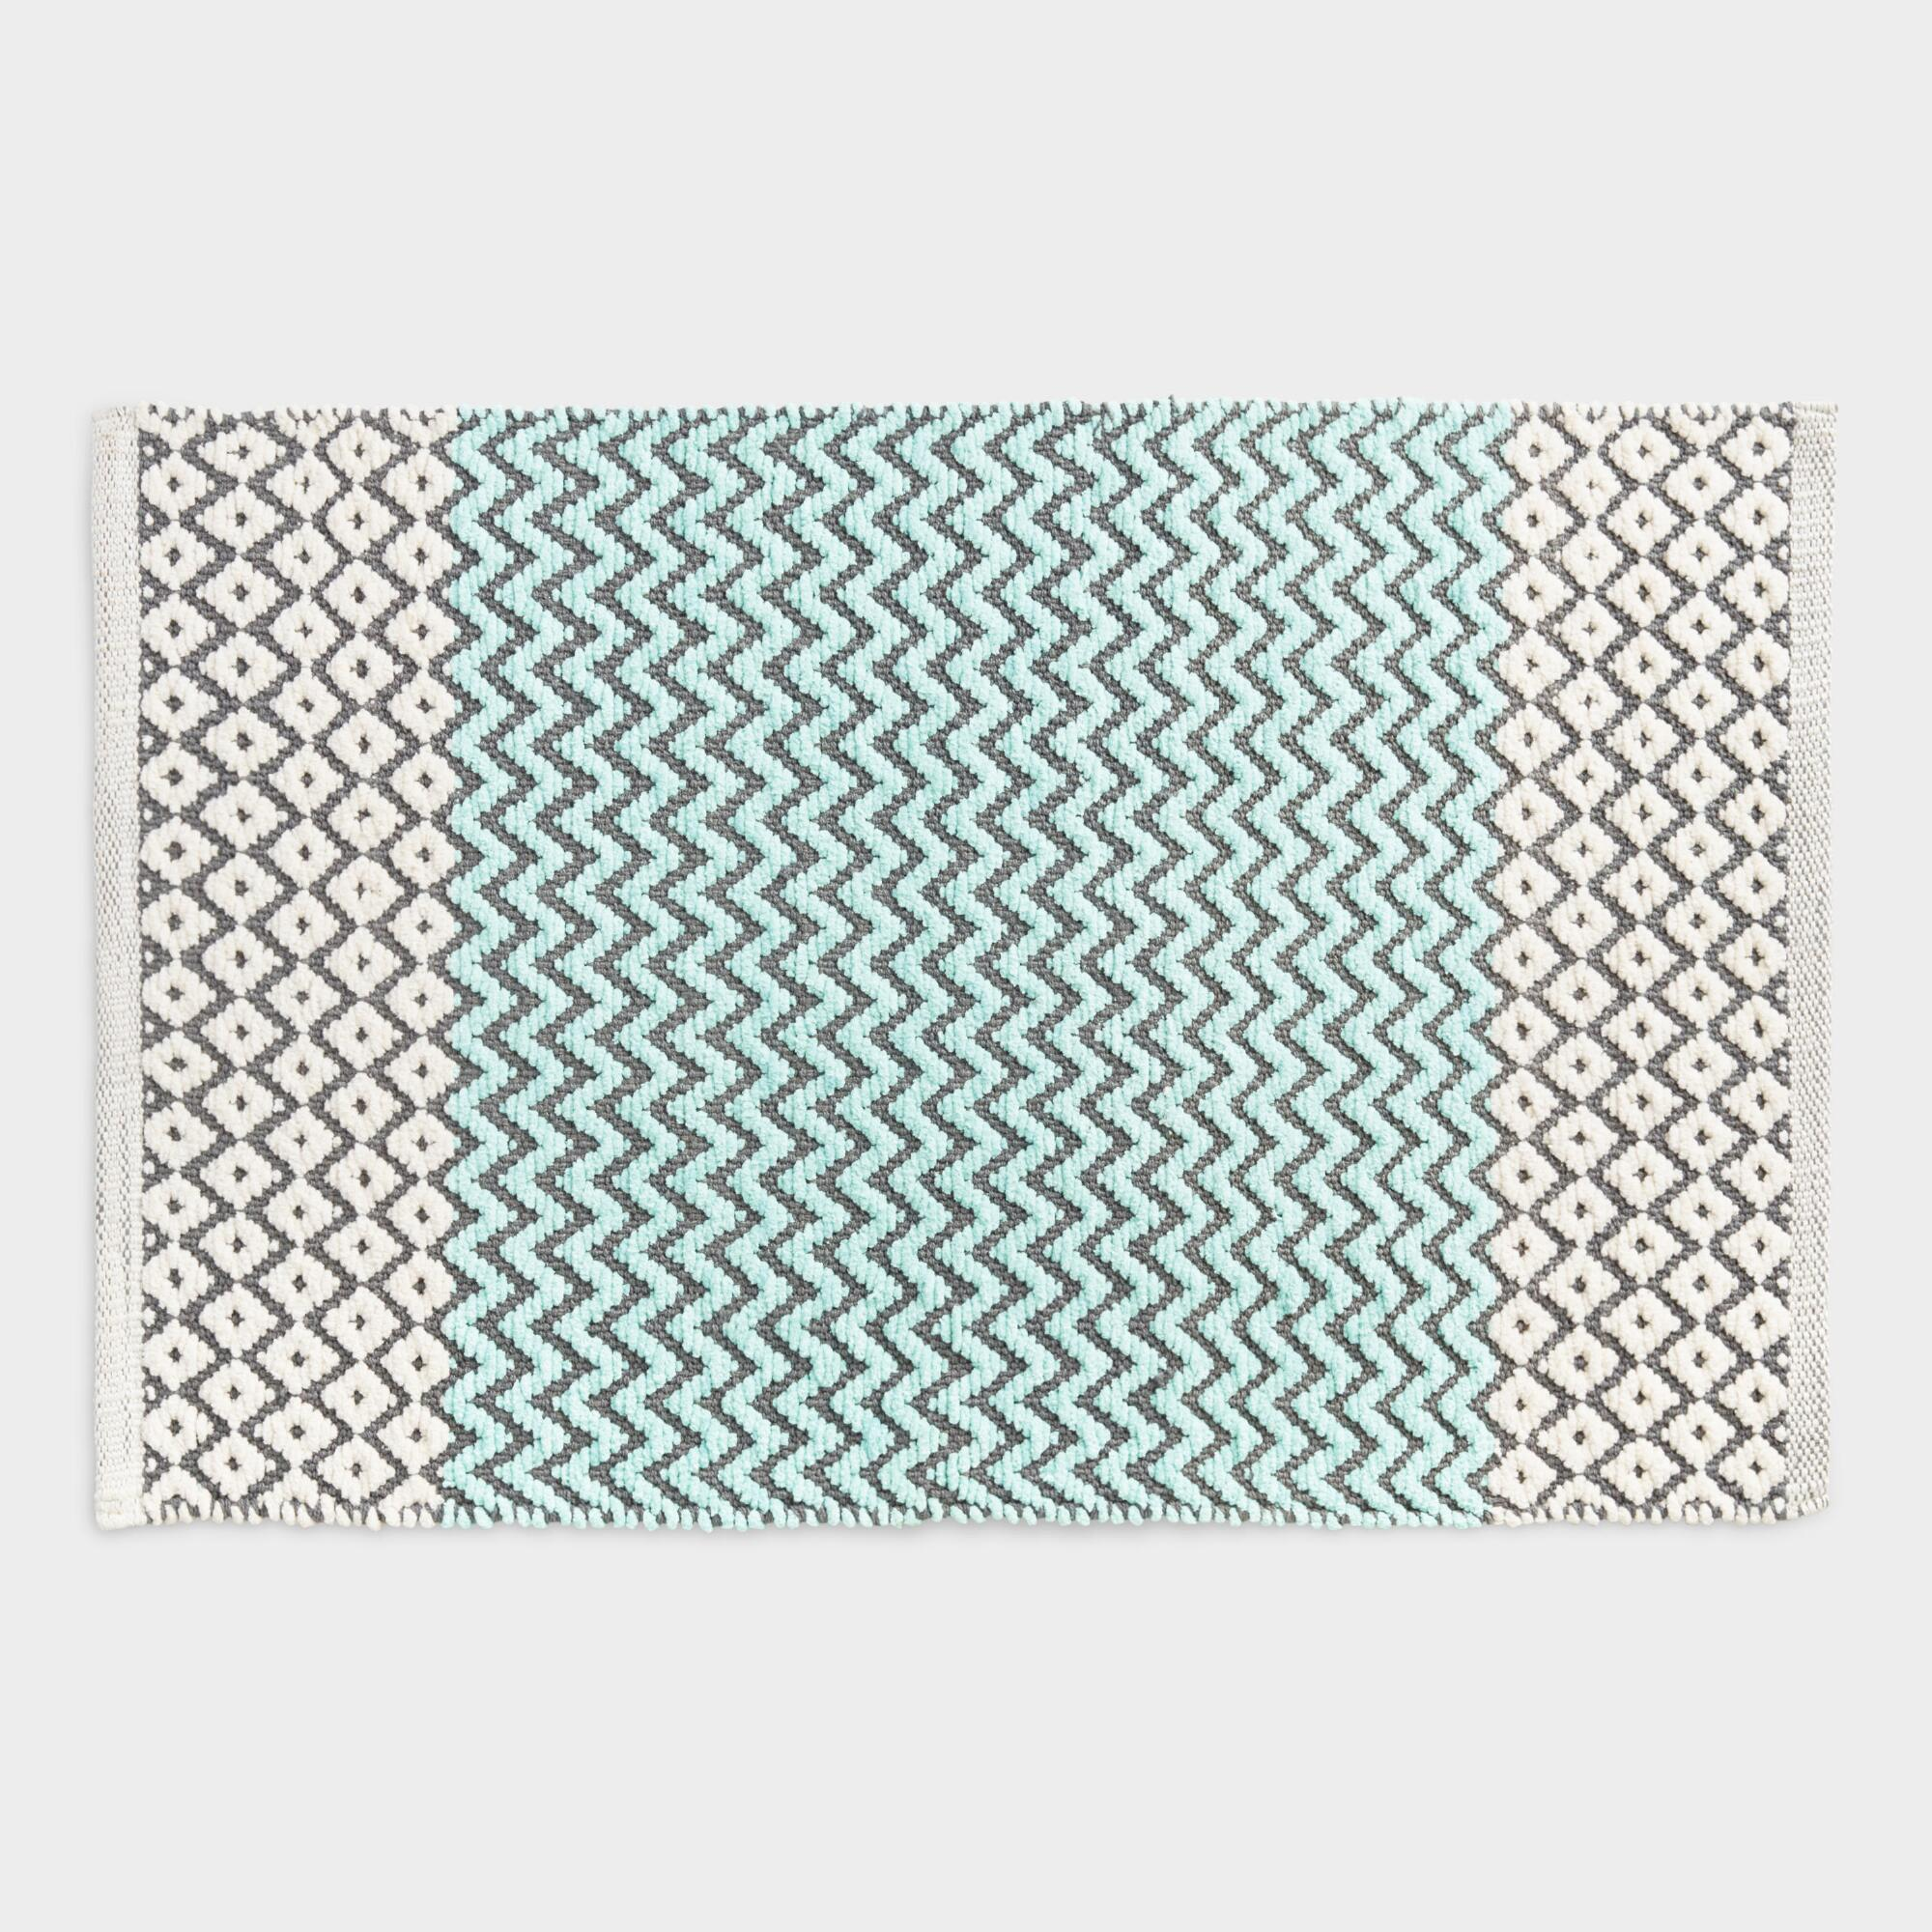 Very large bath rugs search - Aqua Chenille Chevron And Diamond Bath Mat